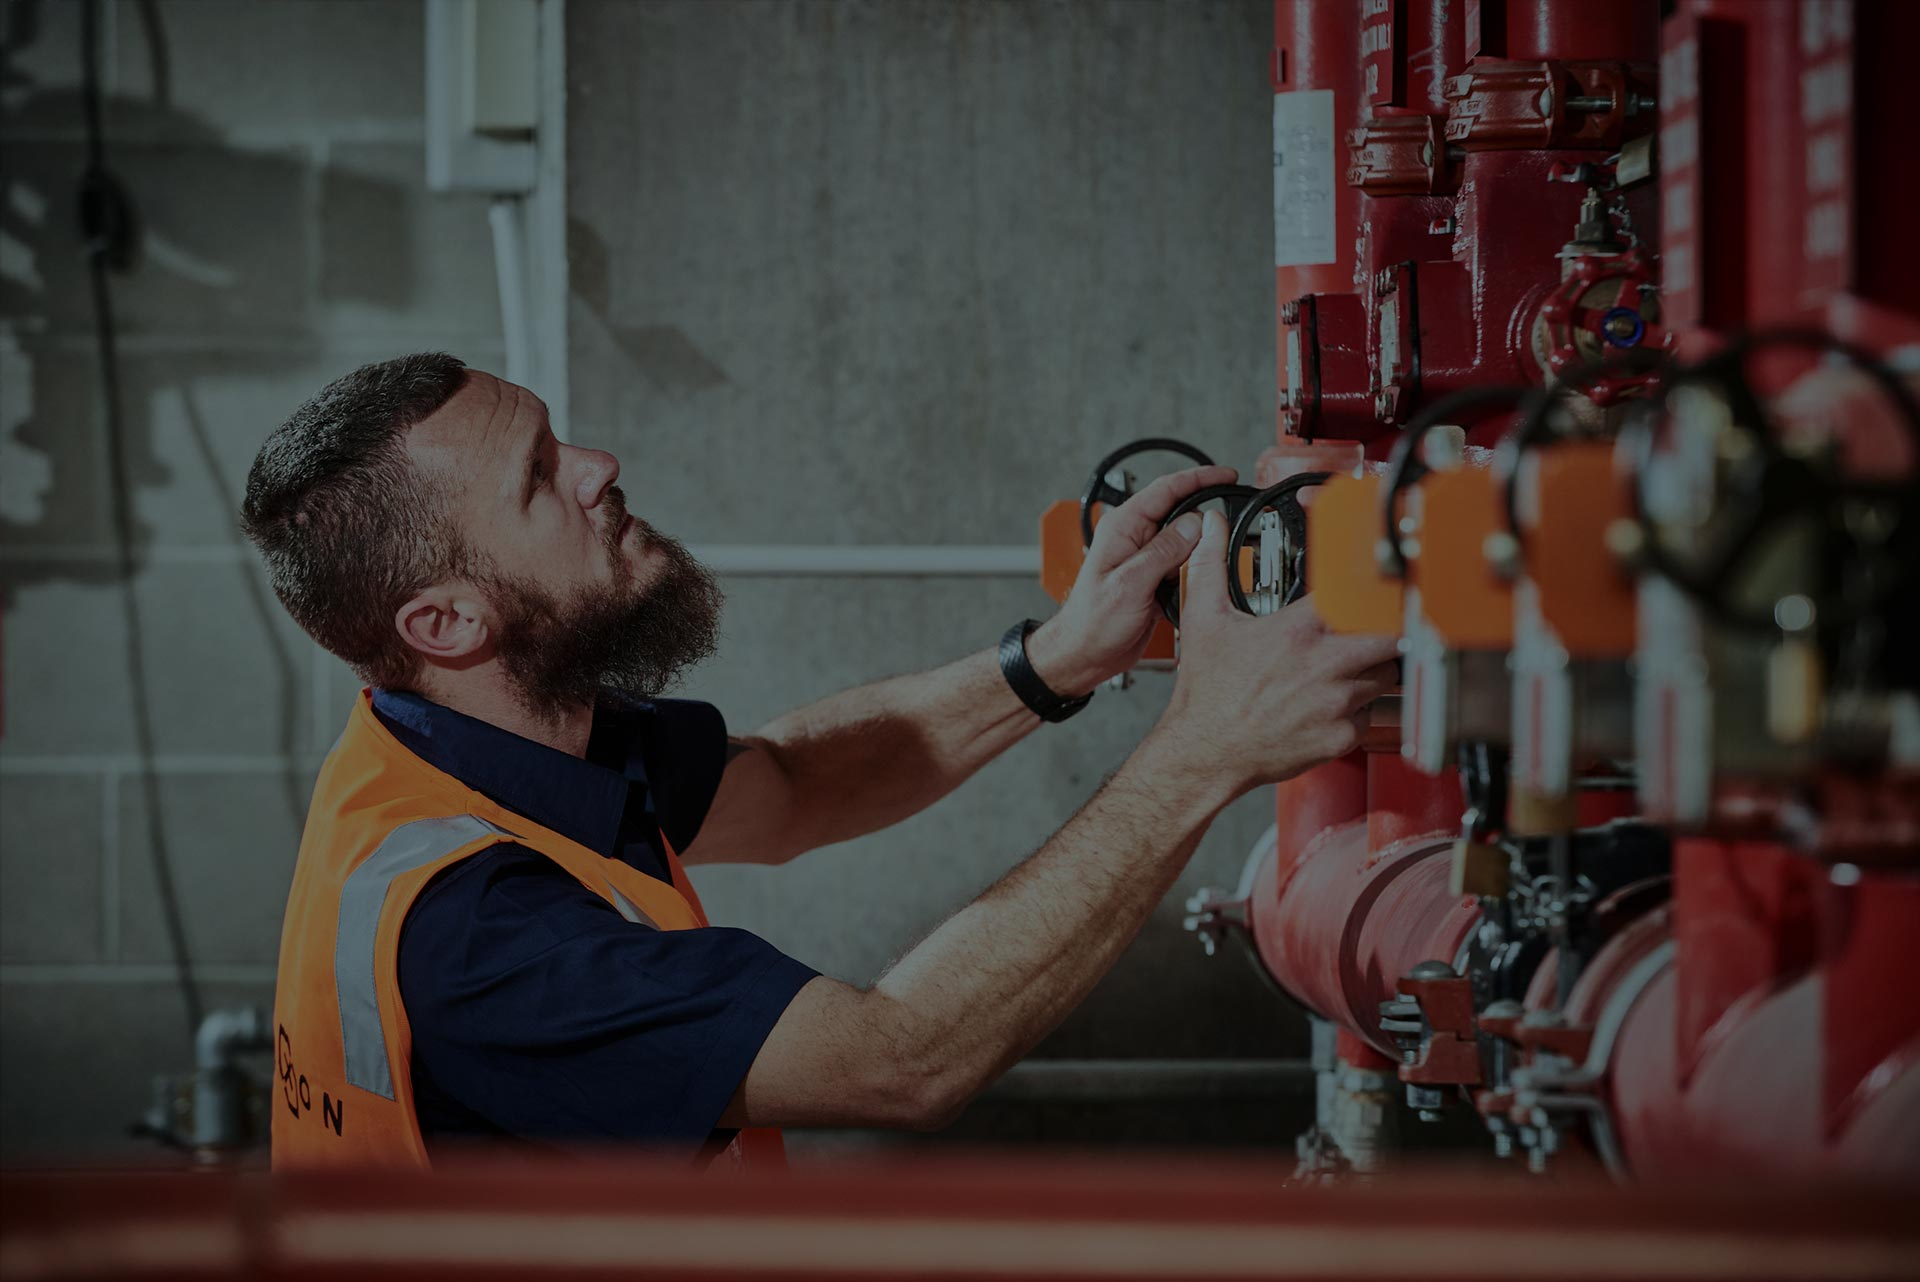 An Alexon employee performing maintenance checks on some fire equipment pipes.